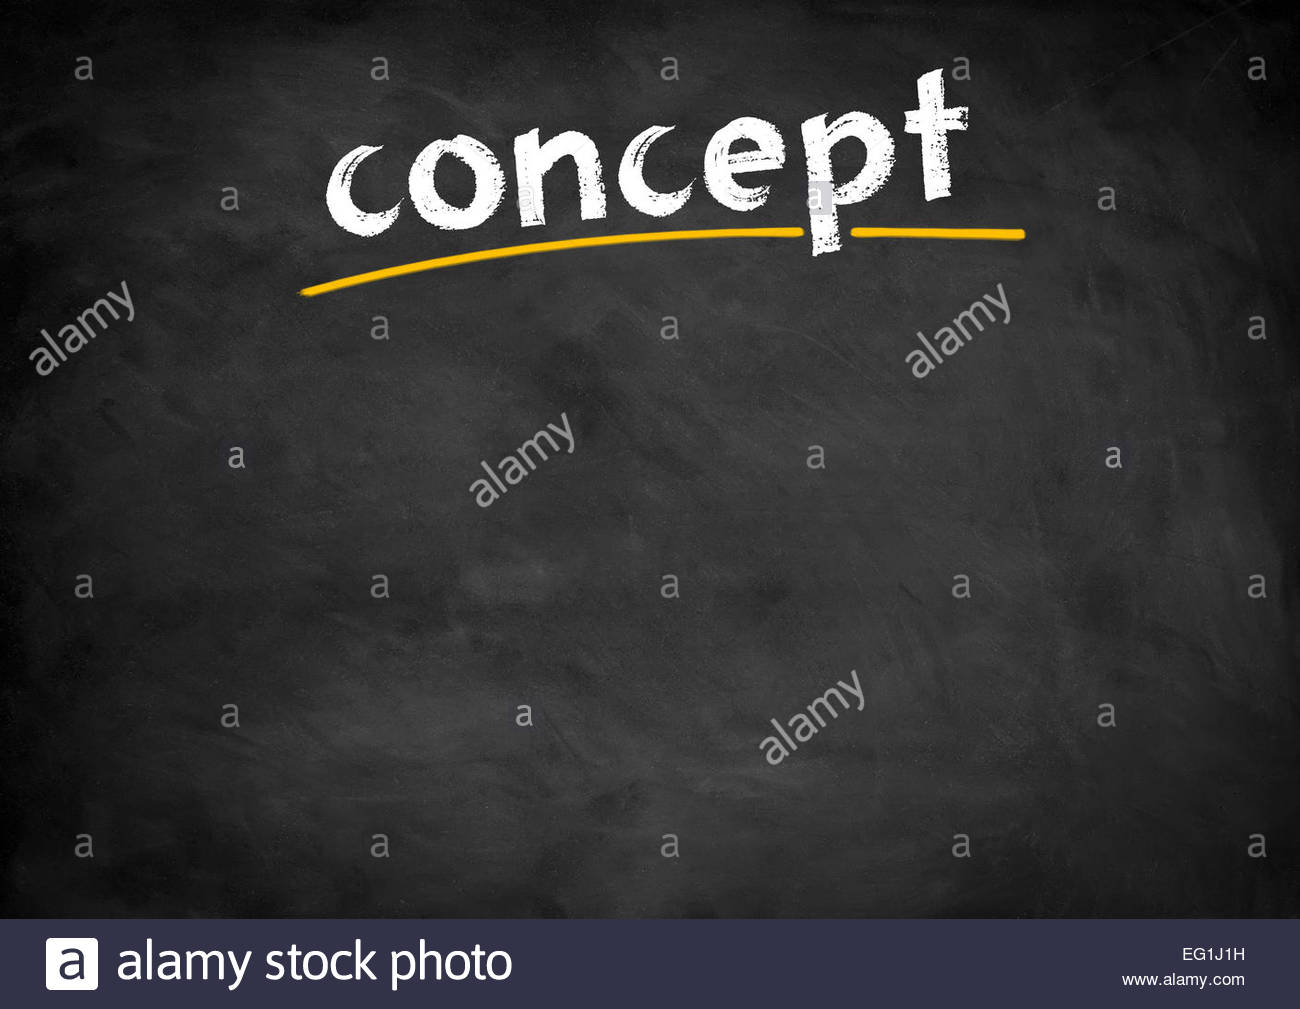 Concept Concept chalkboard Photo Stock